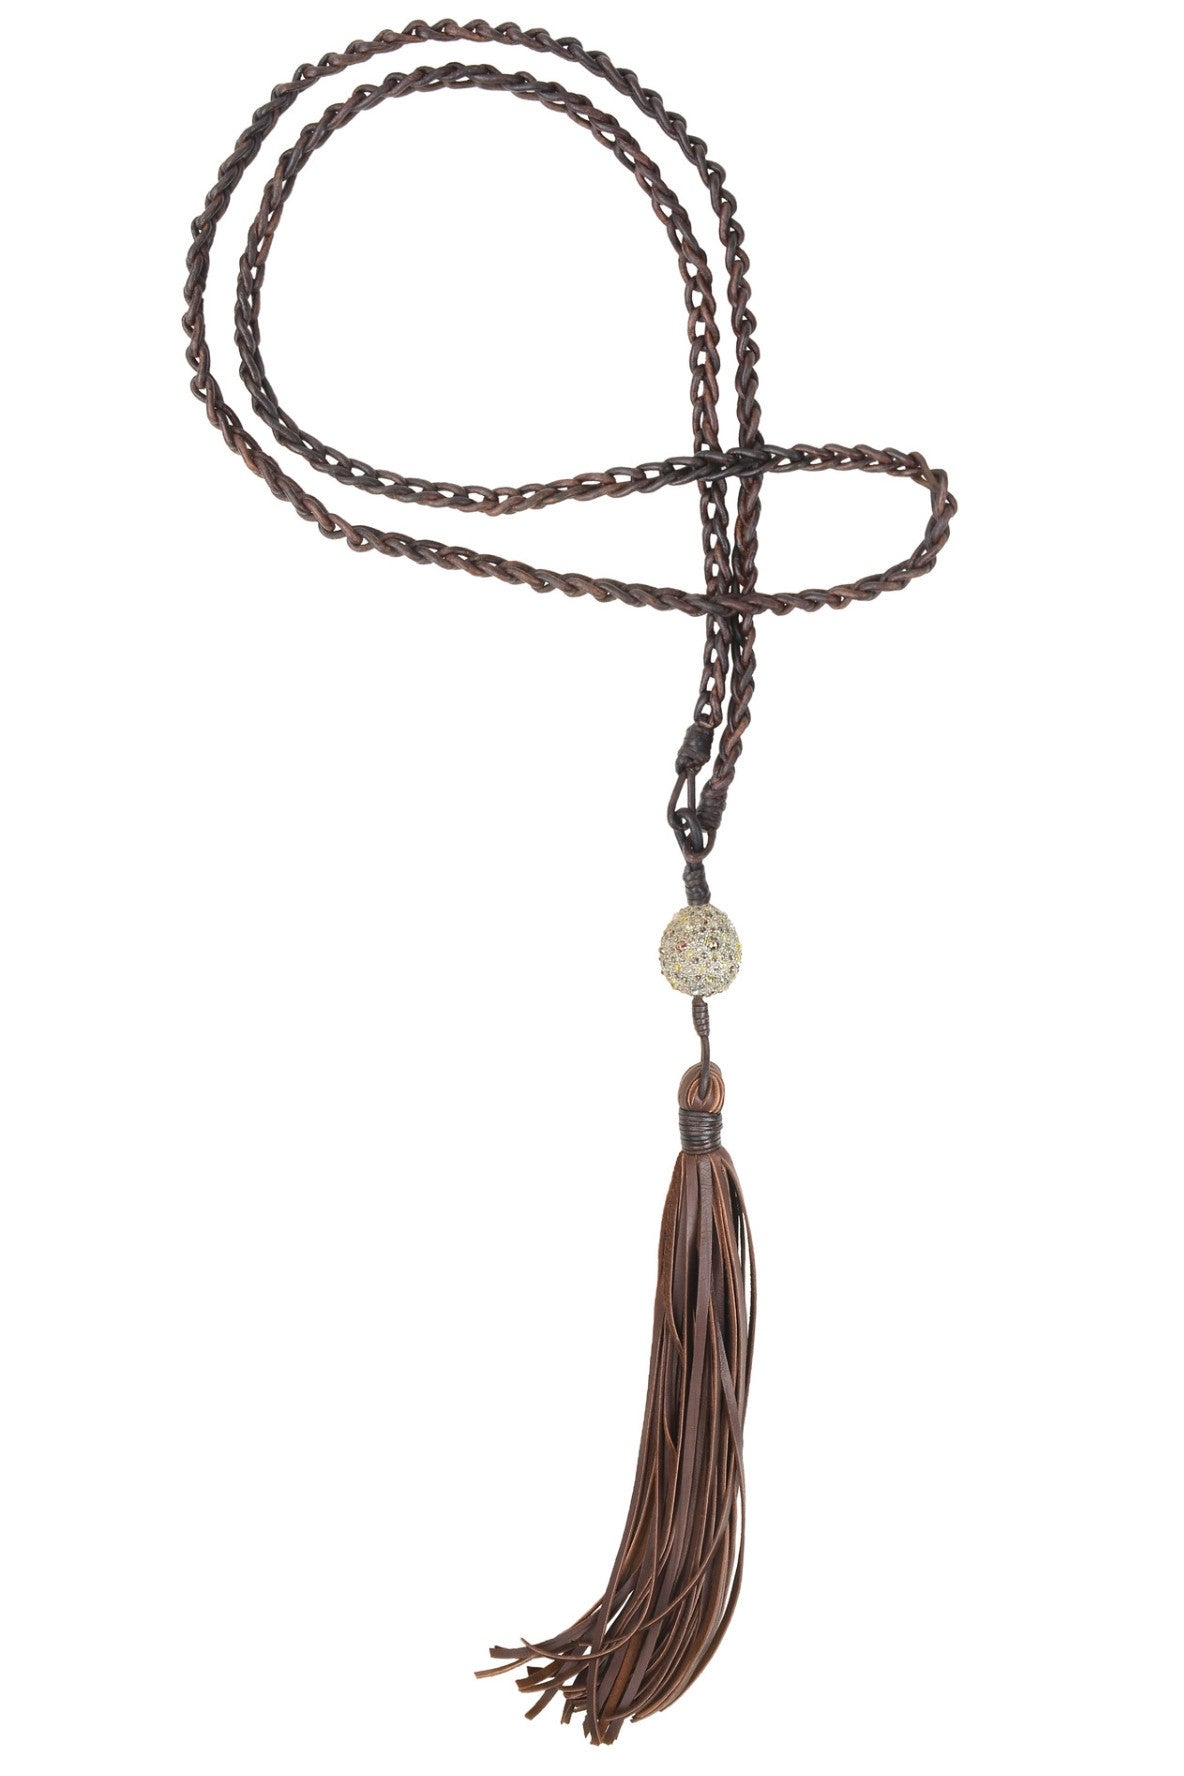 Jurassic Tassel Necklace - Hottest Designer Pearl and Leather Jewelry | VINCENT PEACH